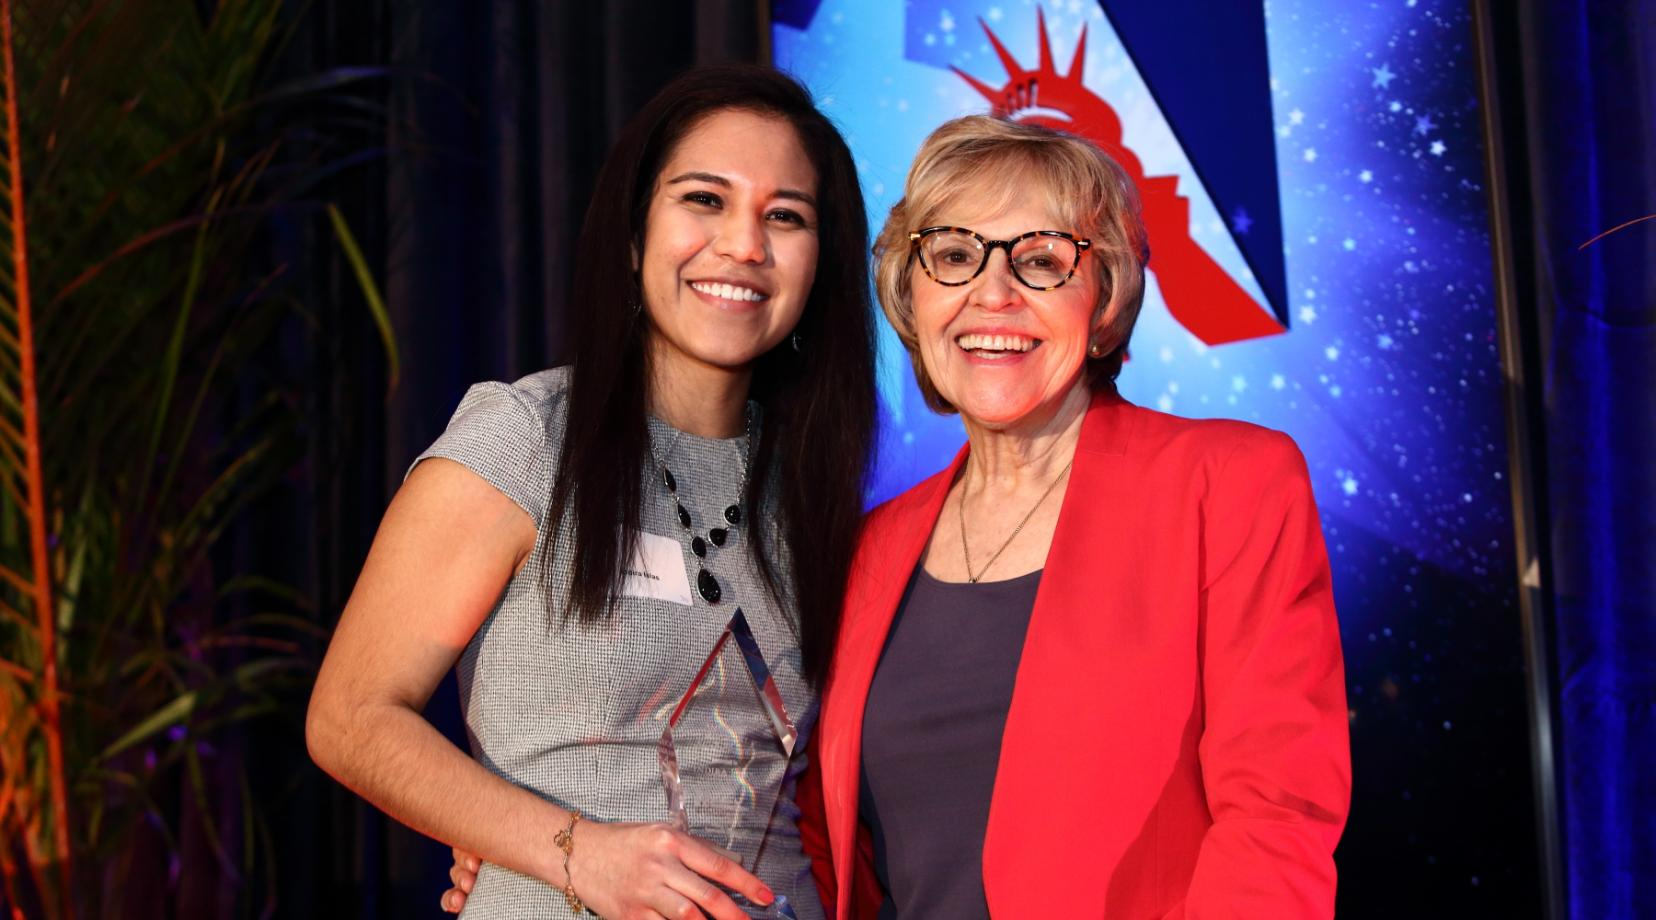 <p>Indira Islas (l), with her Holly Skolnick Human Rights Awards from the Americans for Immigrant Justice, stands with the Cheryl Little, the organization&#039;s executive director. Ms. Islas received the award at a Feb. 8 ceremony in Miami, Fla.</p>